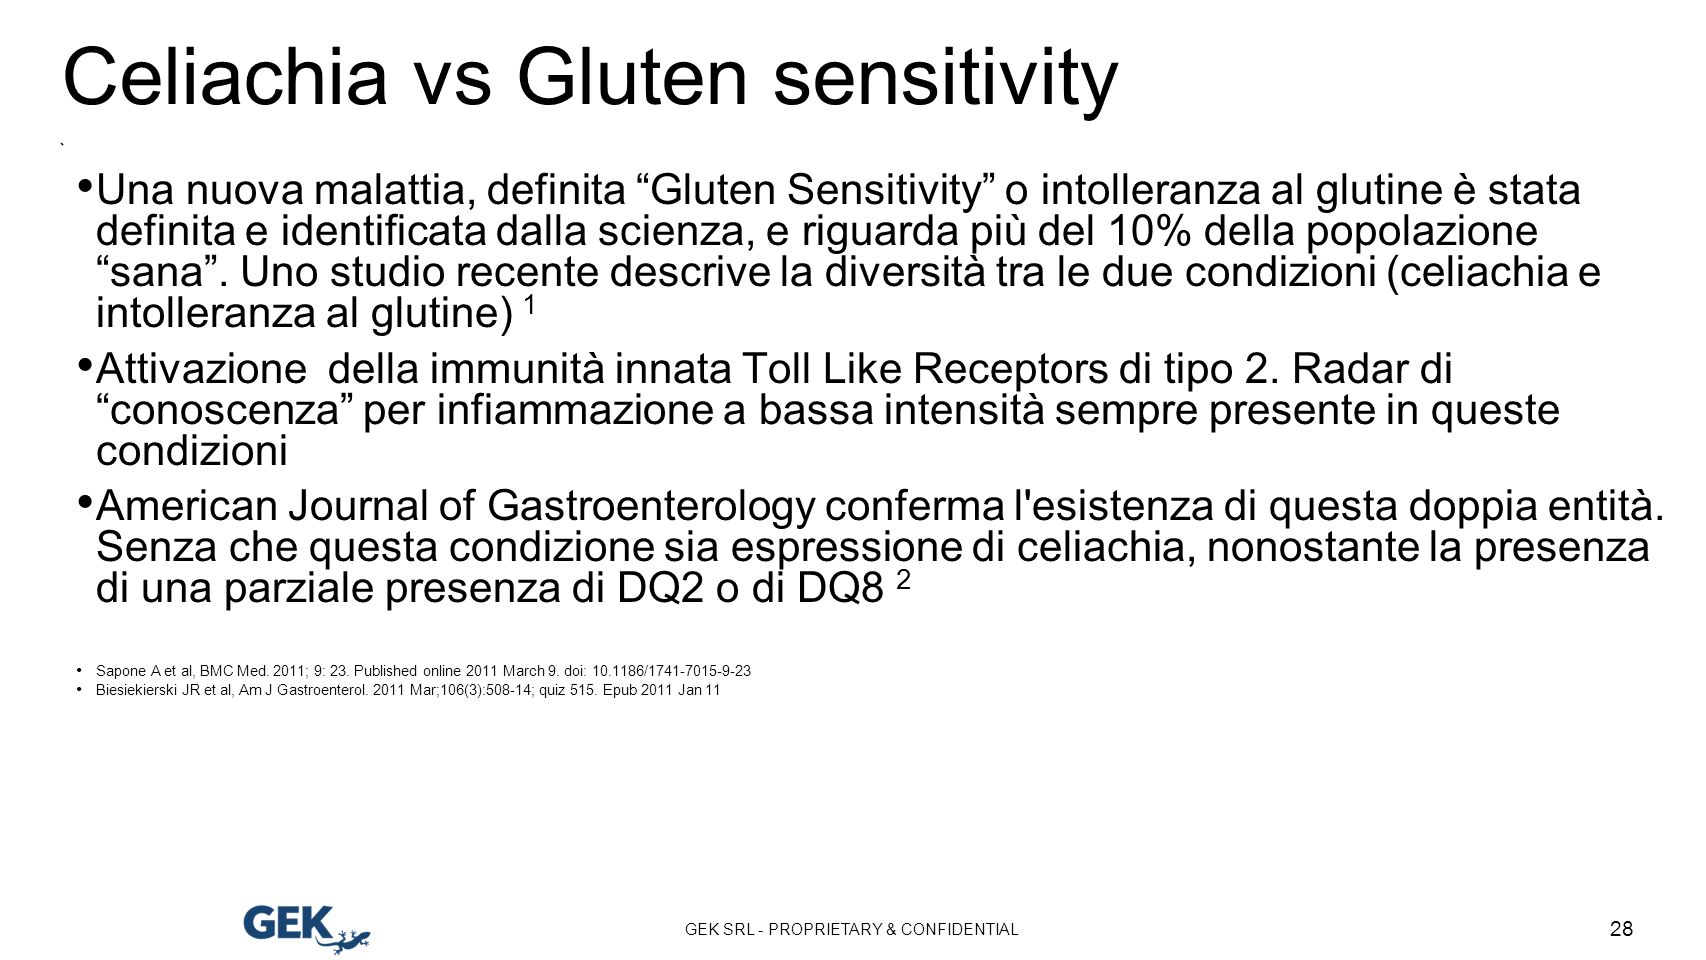 Celiachia vs Gluten sensitivity